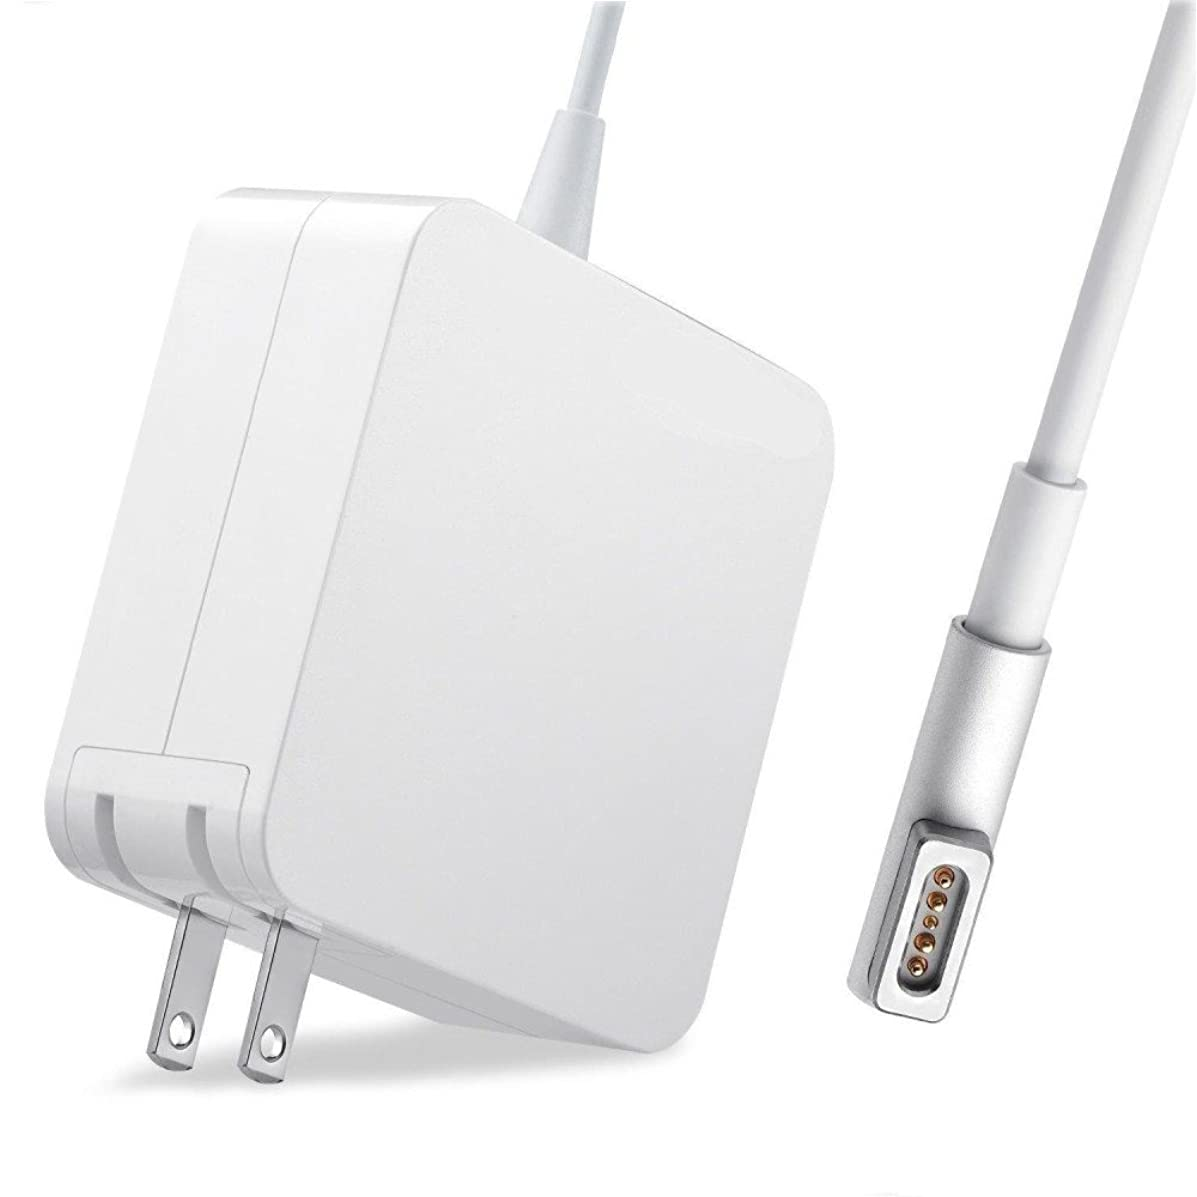 Compatible for MacBook & MacBook Air & MacBook Pro Charger, Compatible with 45W, 60W and 85W, Great Replacement for All Apple Mac Notebook 11 13 15 17inch (Mid 2012) & Before 85W MagSafe 1 L-tip